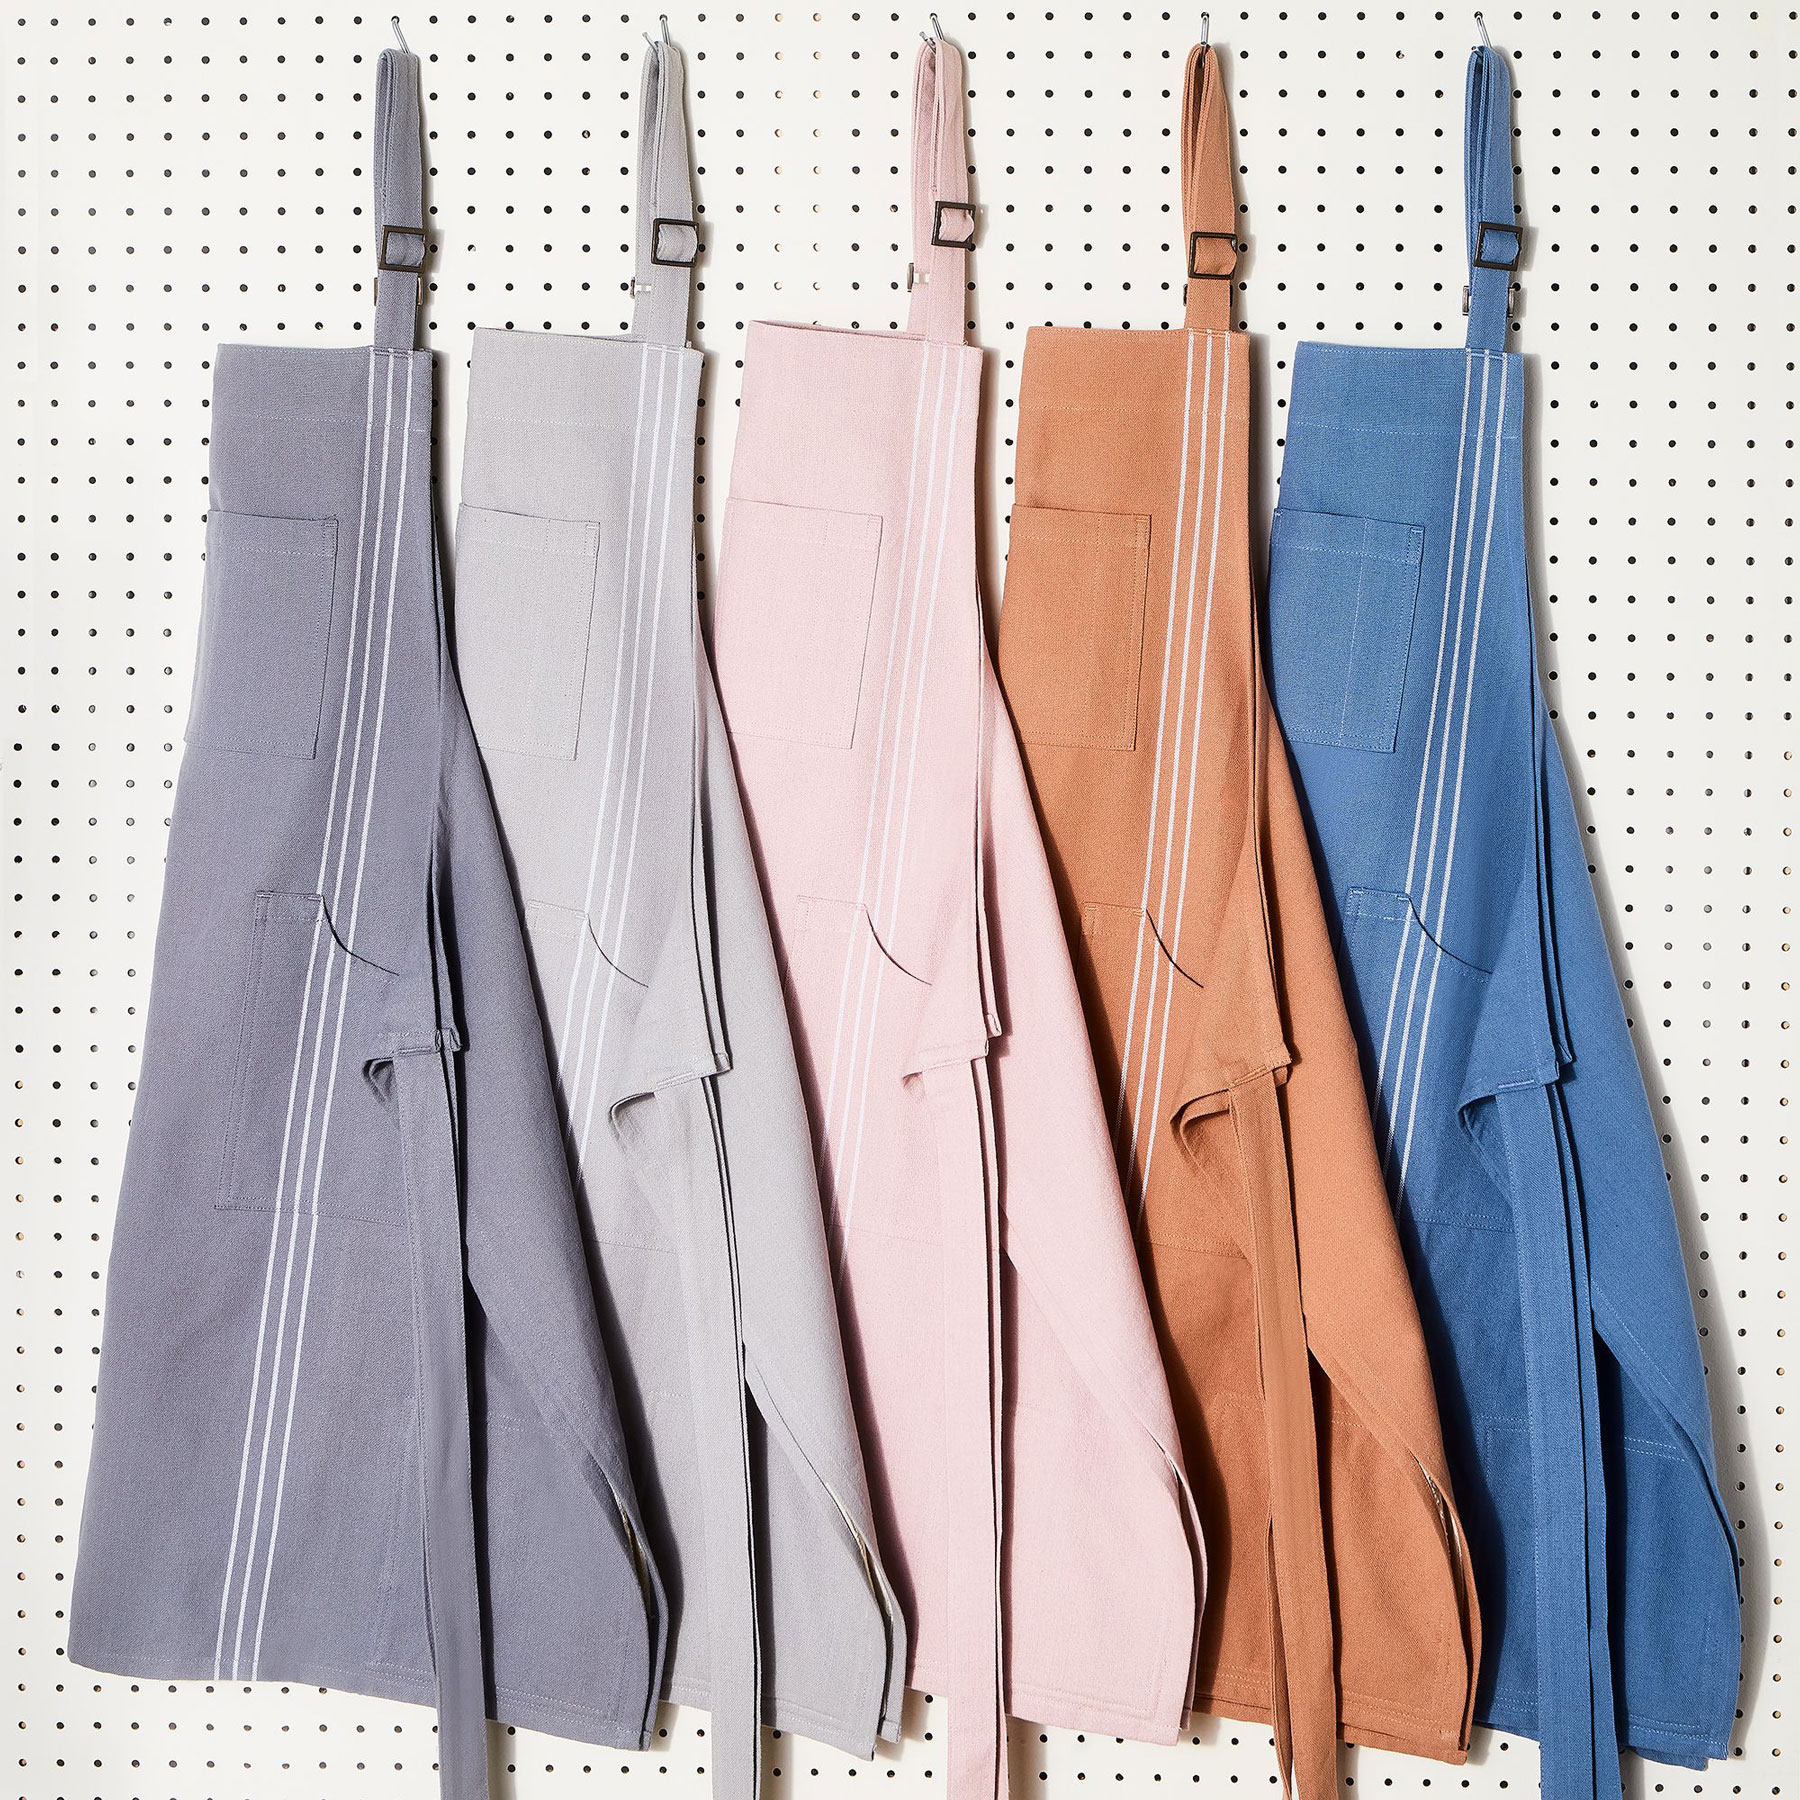 Father's Day gift ideas - Food52 Five Two Ultimate Apron